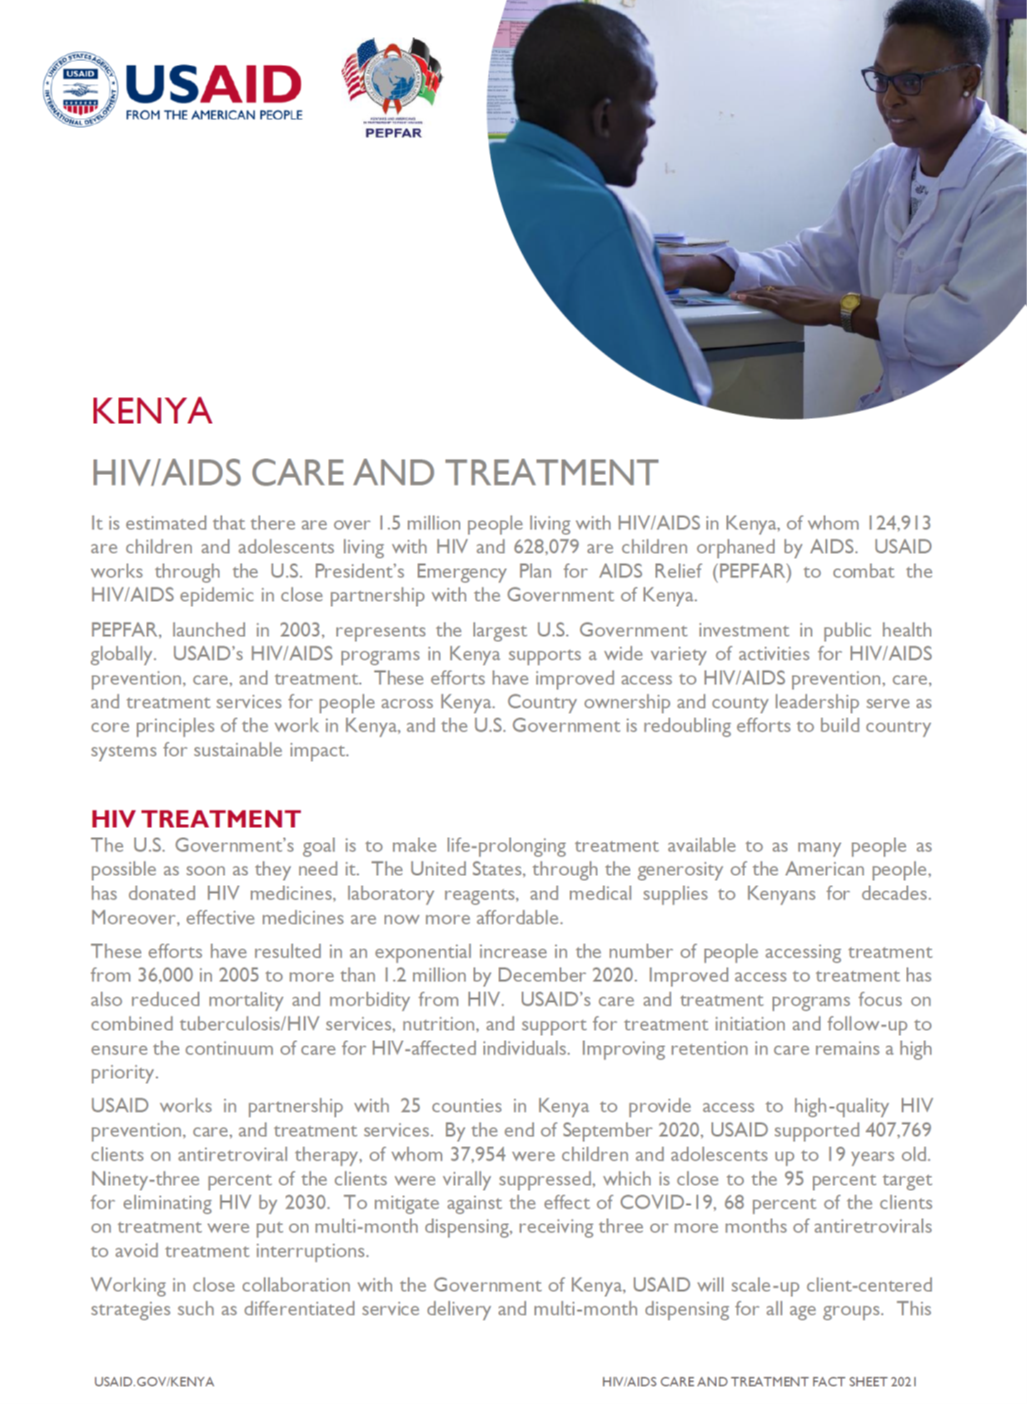 HIV/AIDS Care and Treatment fact sheet